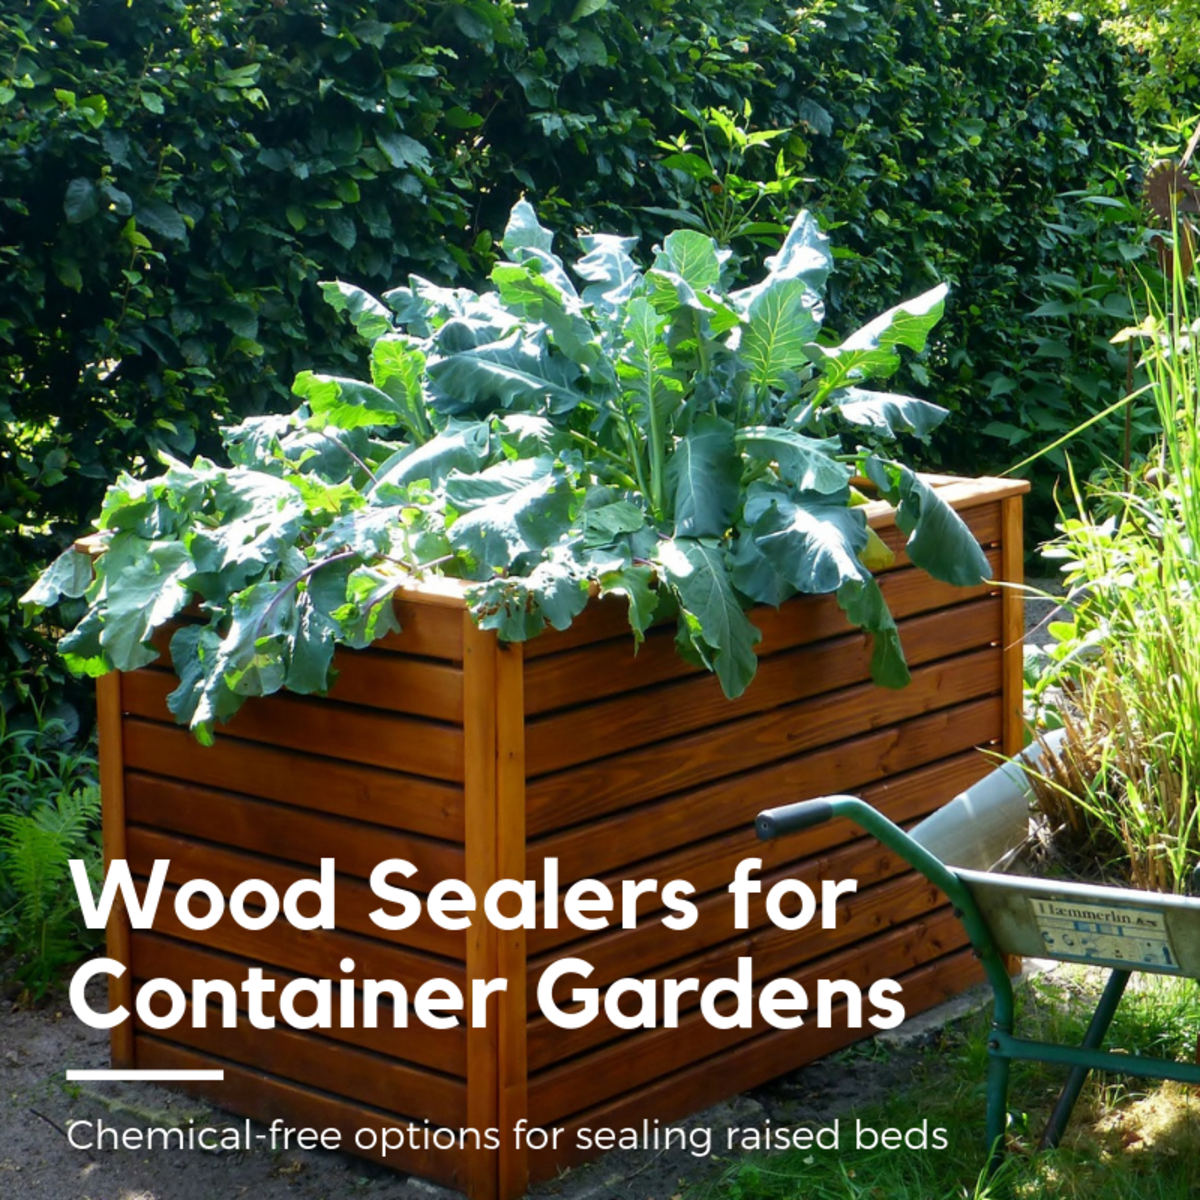 This article will break down five of my favorite safe, chemical-free options for wood sealing container gardens and raised beds.